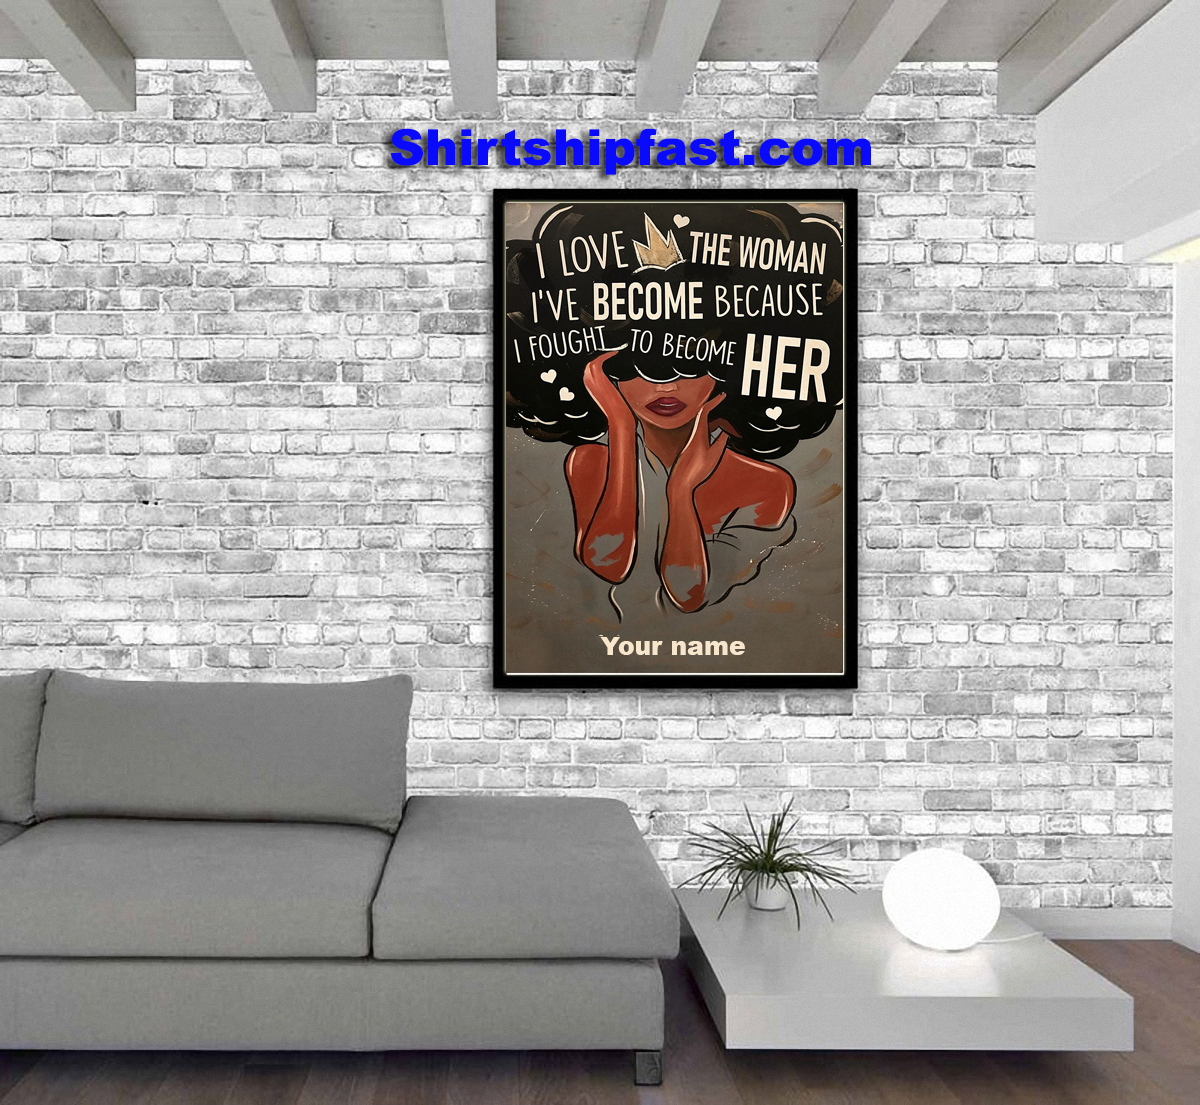 Personalized custom name Black I love the woman I've become poster - Picture 1